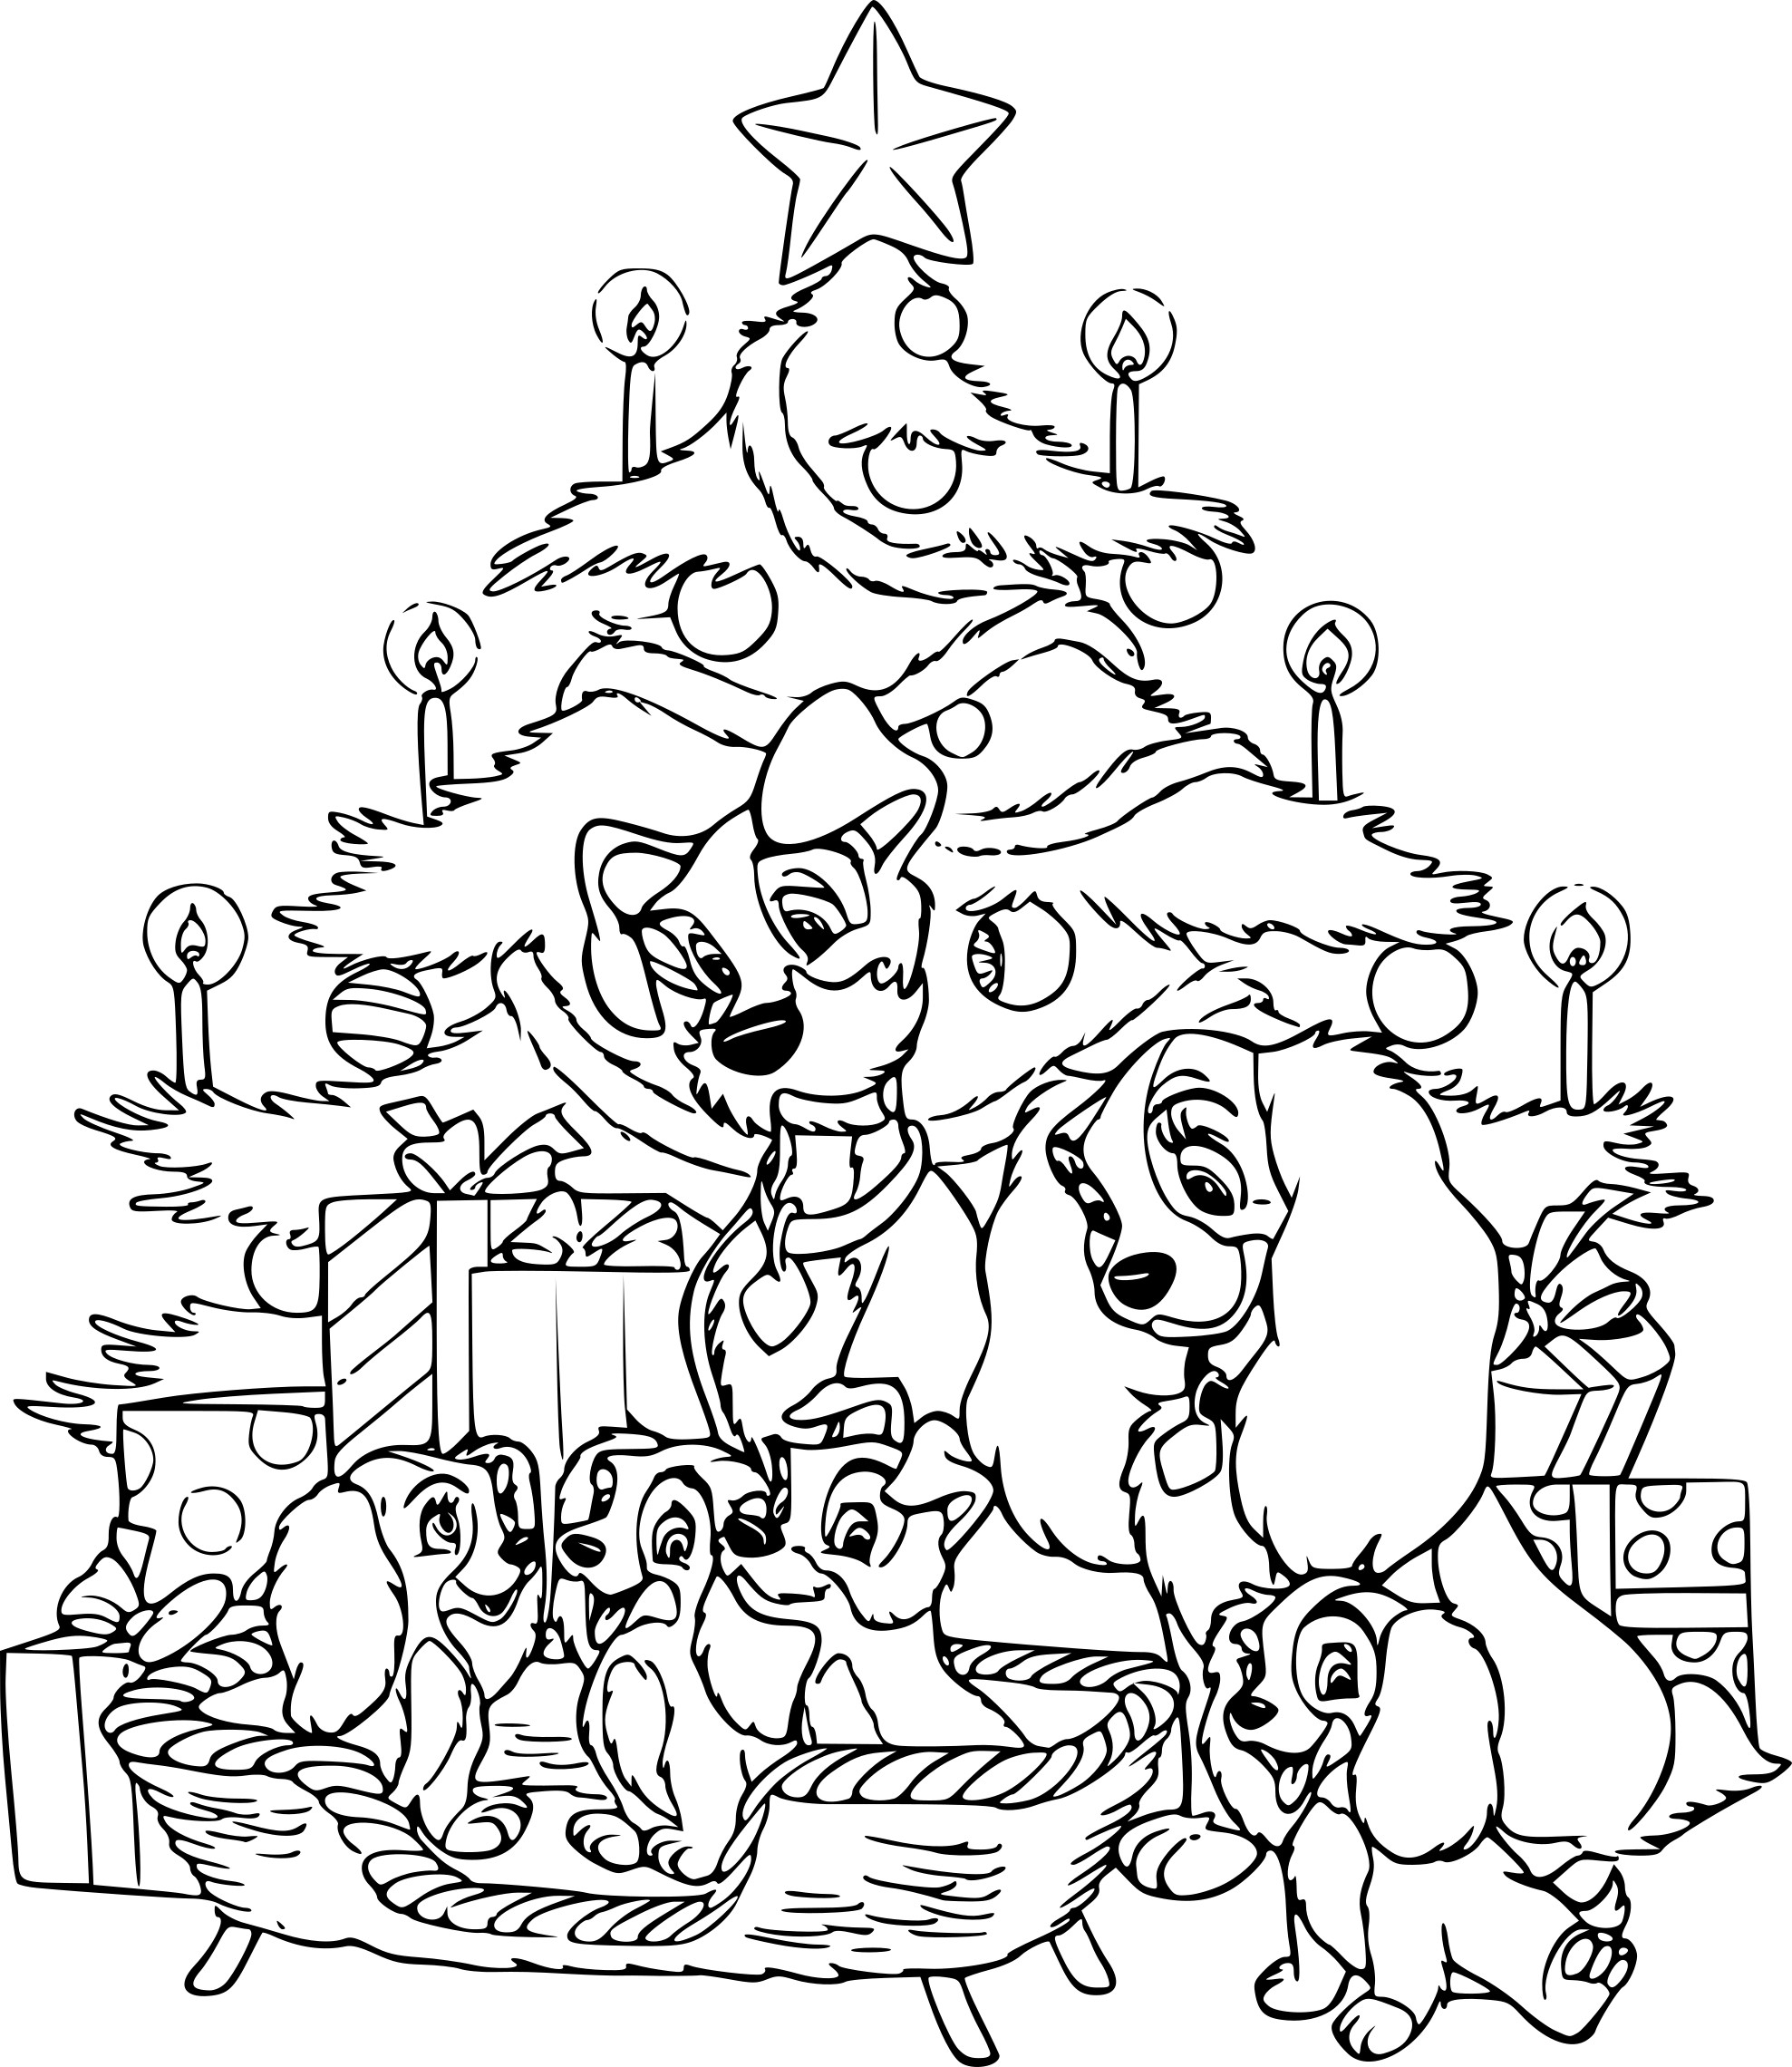 Coloriage Disney Woody.27 Disney Descendants Coloring Pages Images Free Coloring